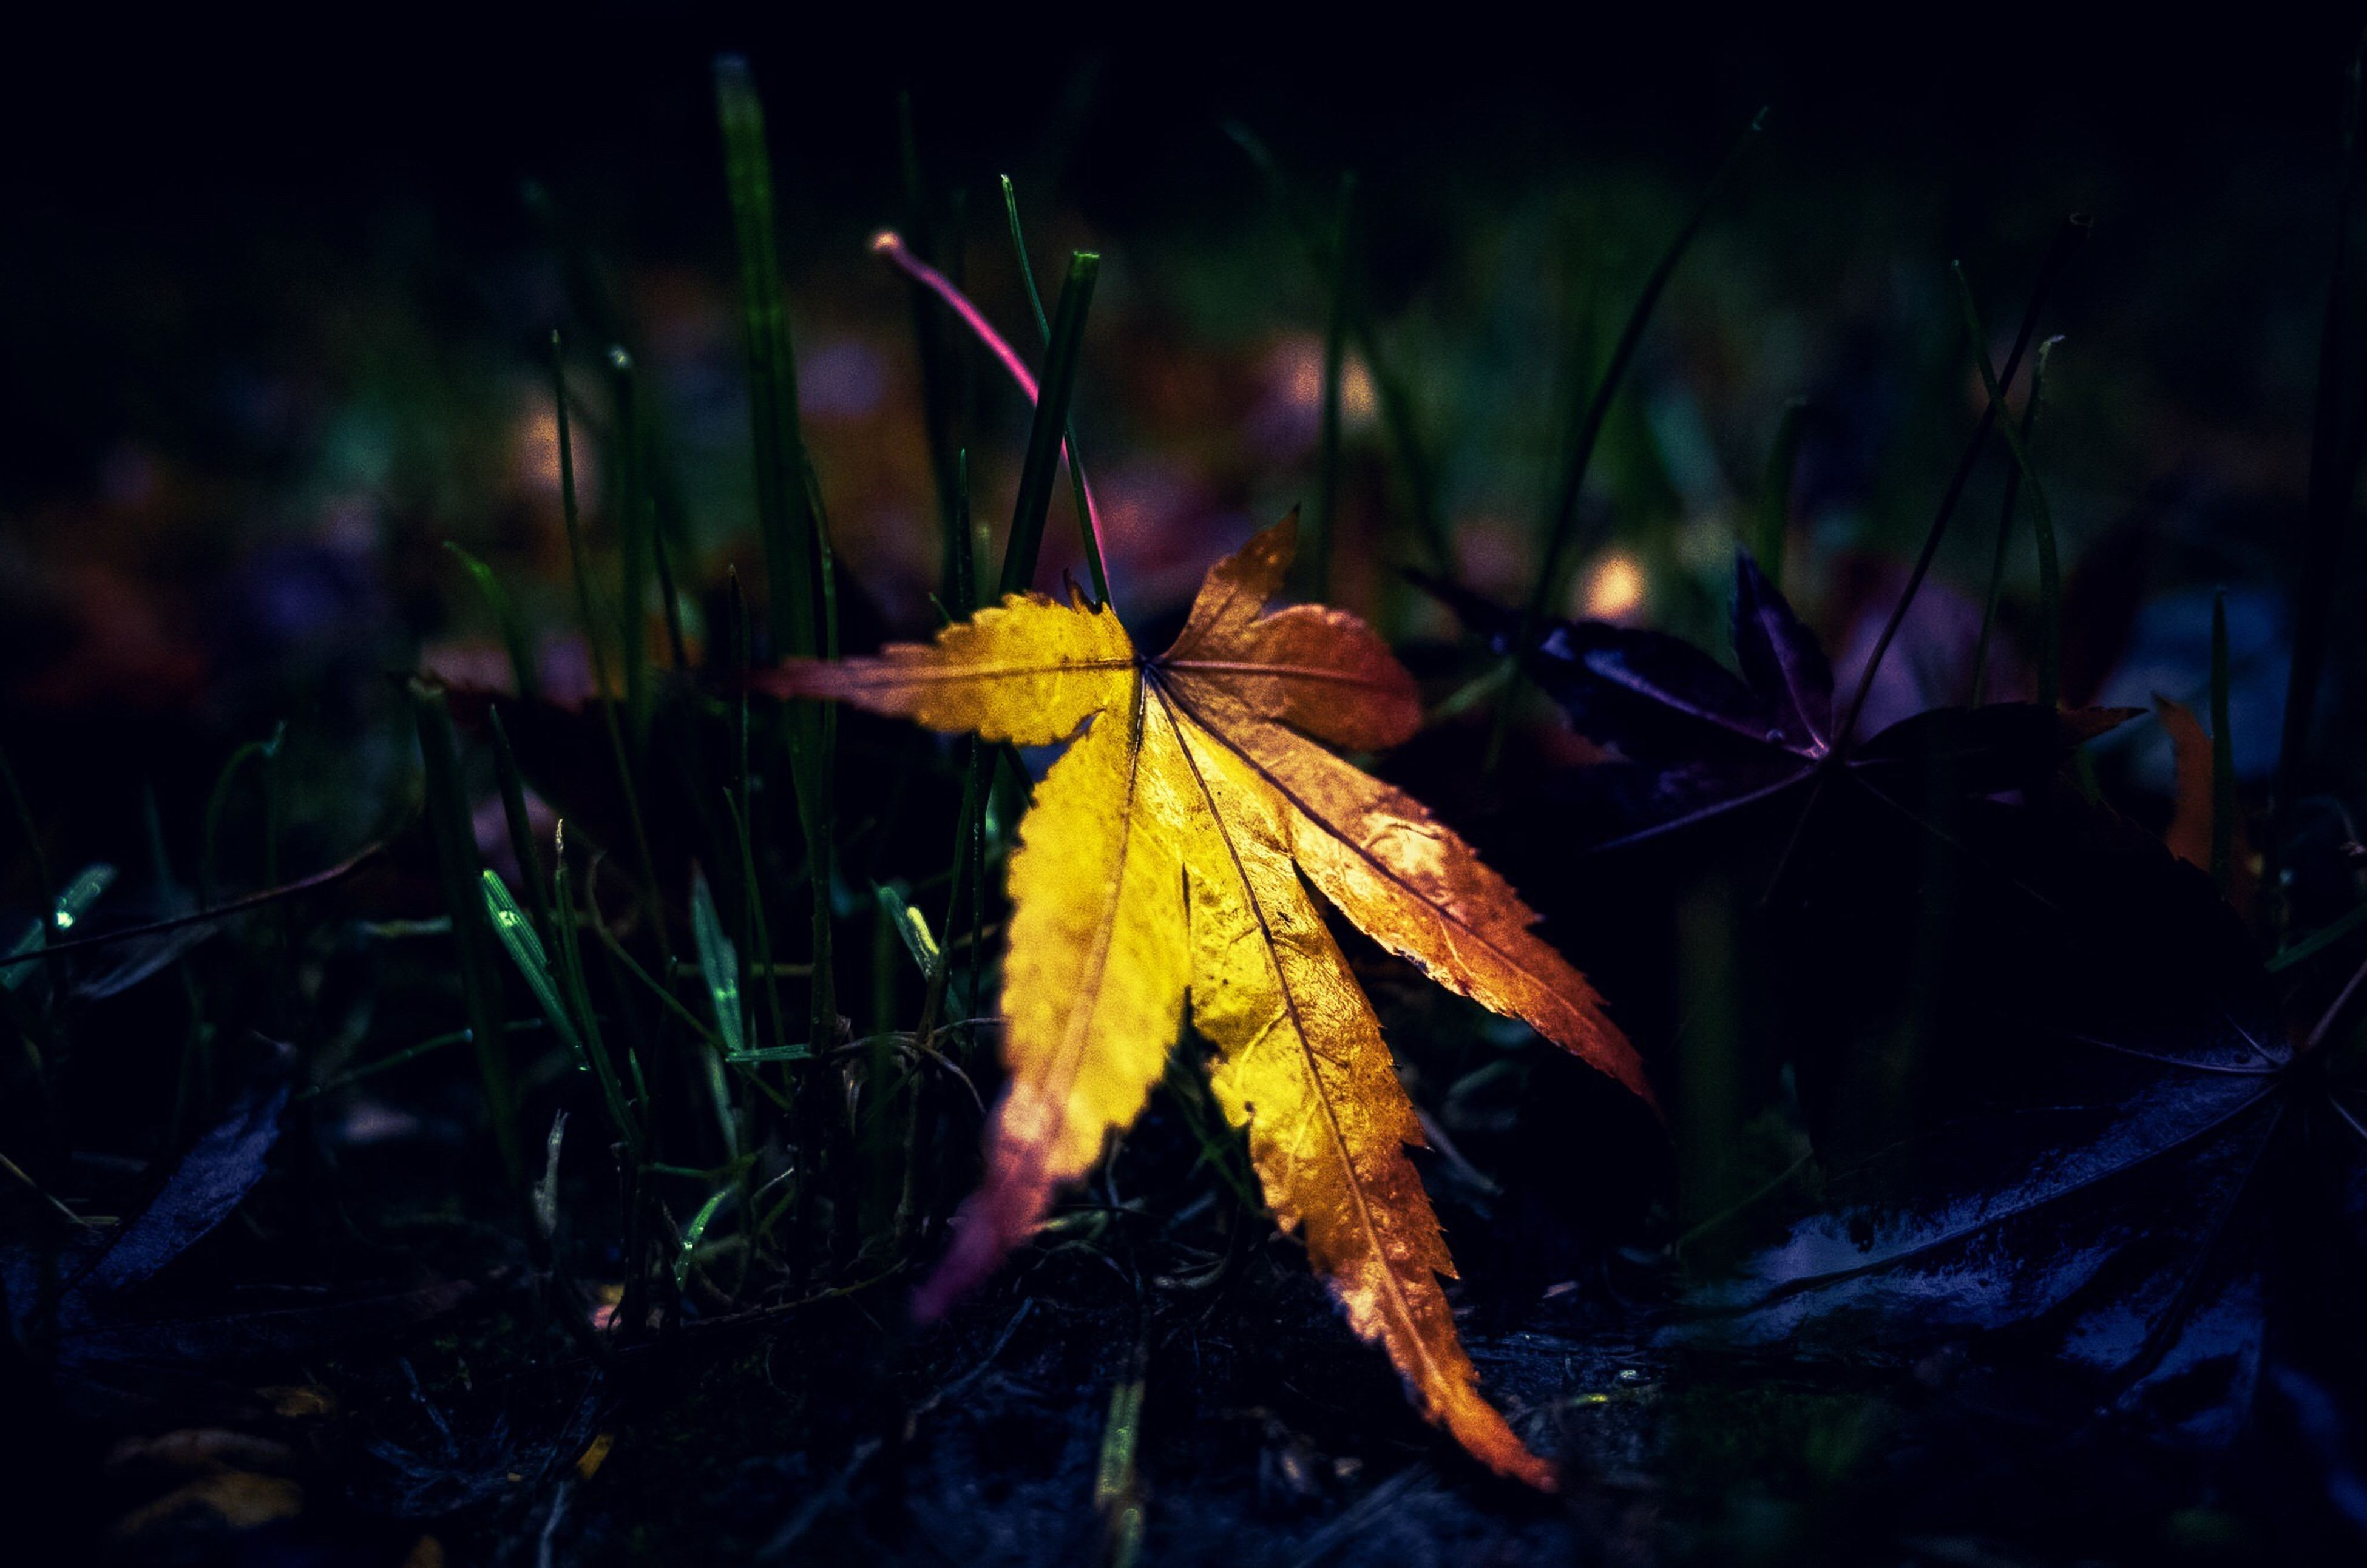 leaf, autumn, focus on foreground, dry, close-up, change, leaves, plant, nature, season, selective focus, growth, leaf vein, fragility, stem, outdoors, no people, day, beauty in nature, maple leaf